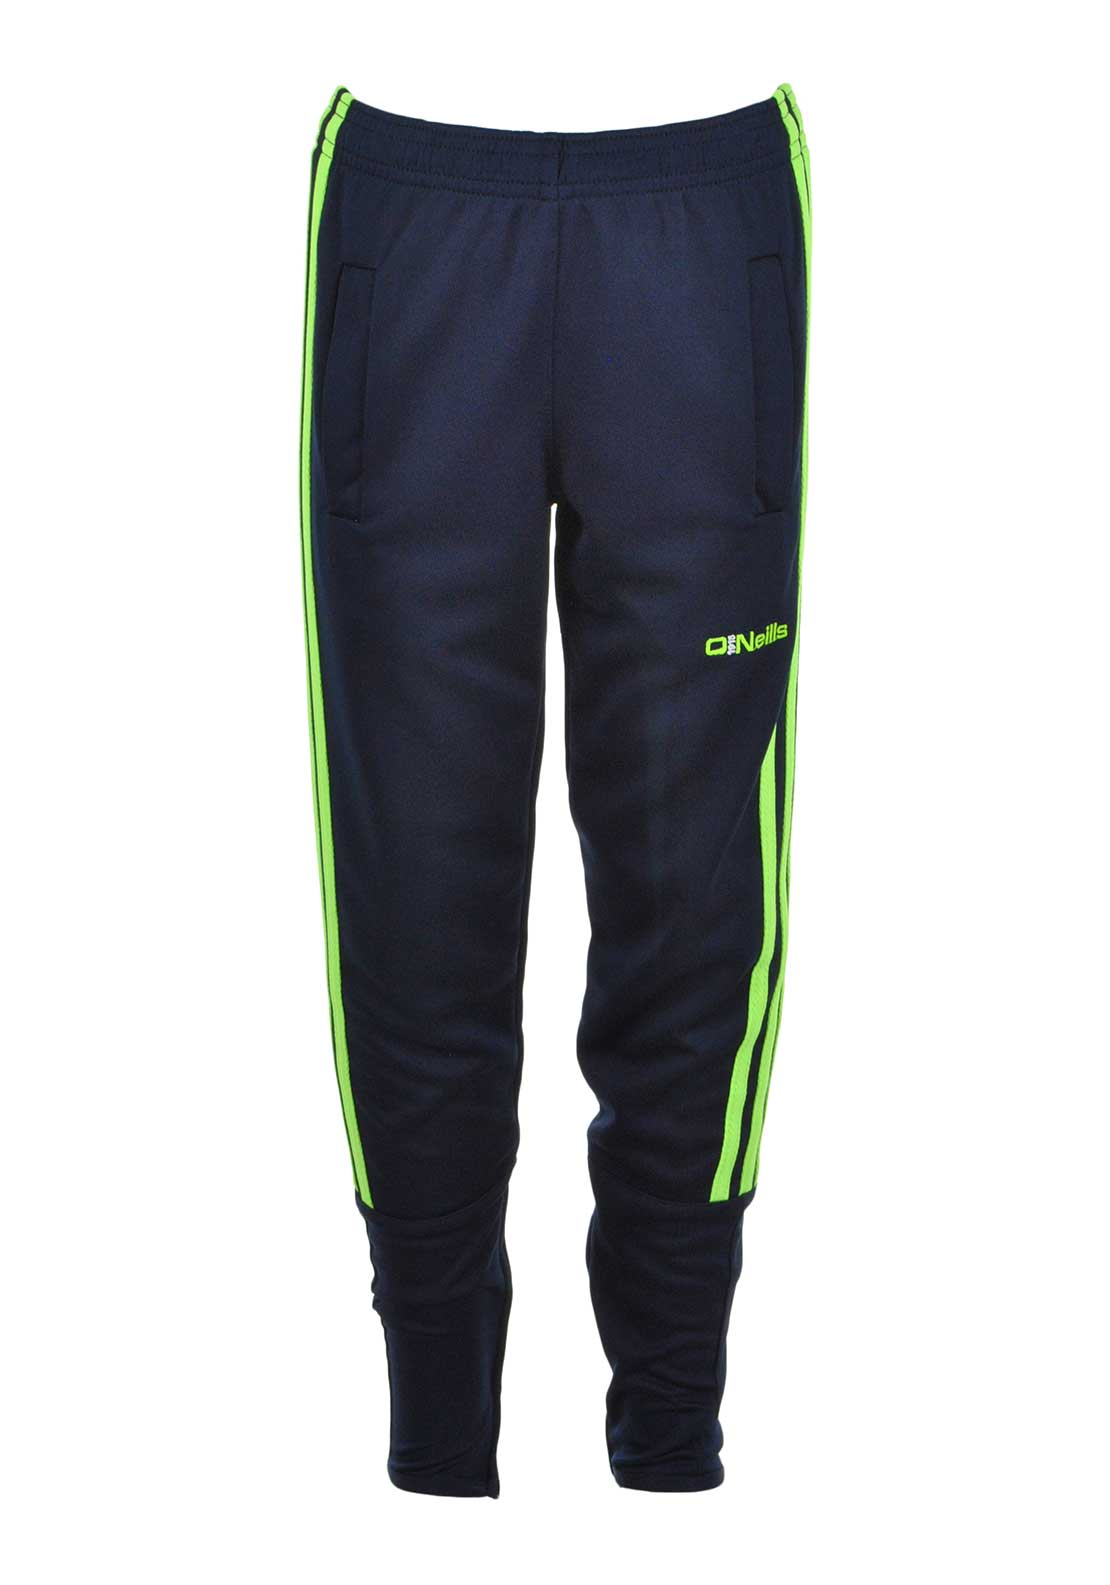 O'Neill's Boys Darwin Training Pant Bottoms, Marine and Neon Lime